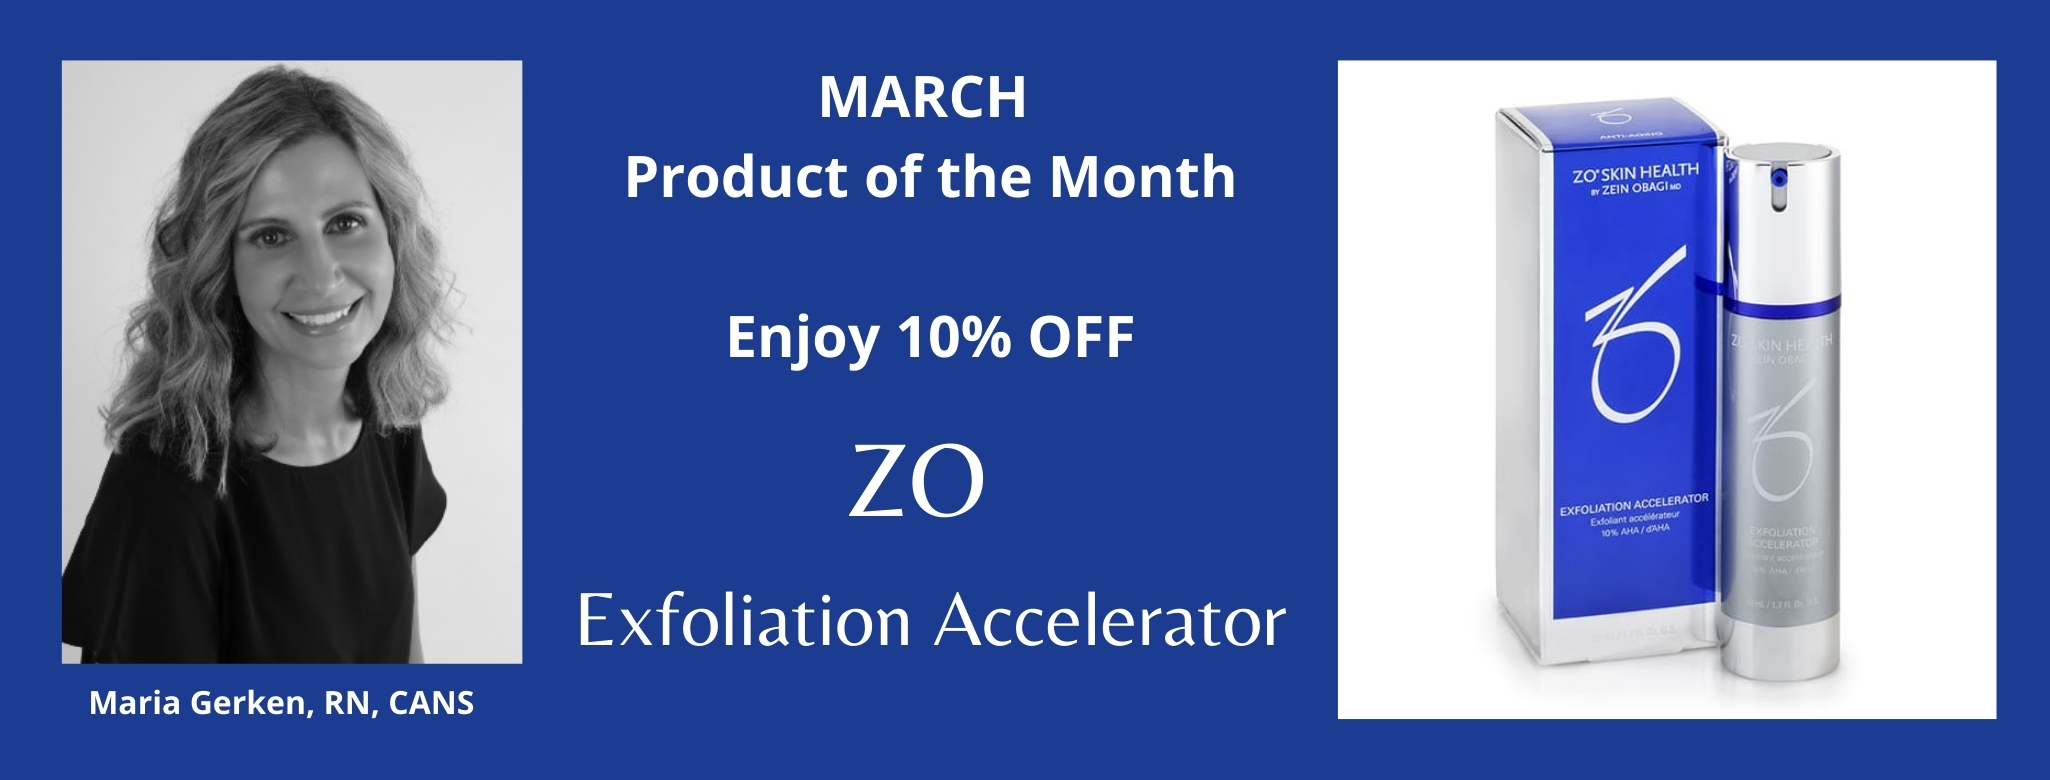 March Product of the Month